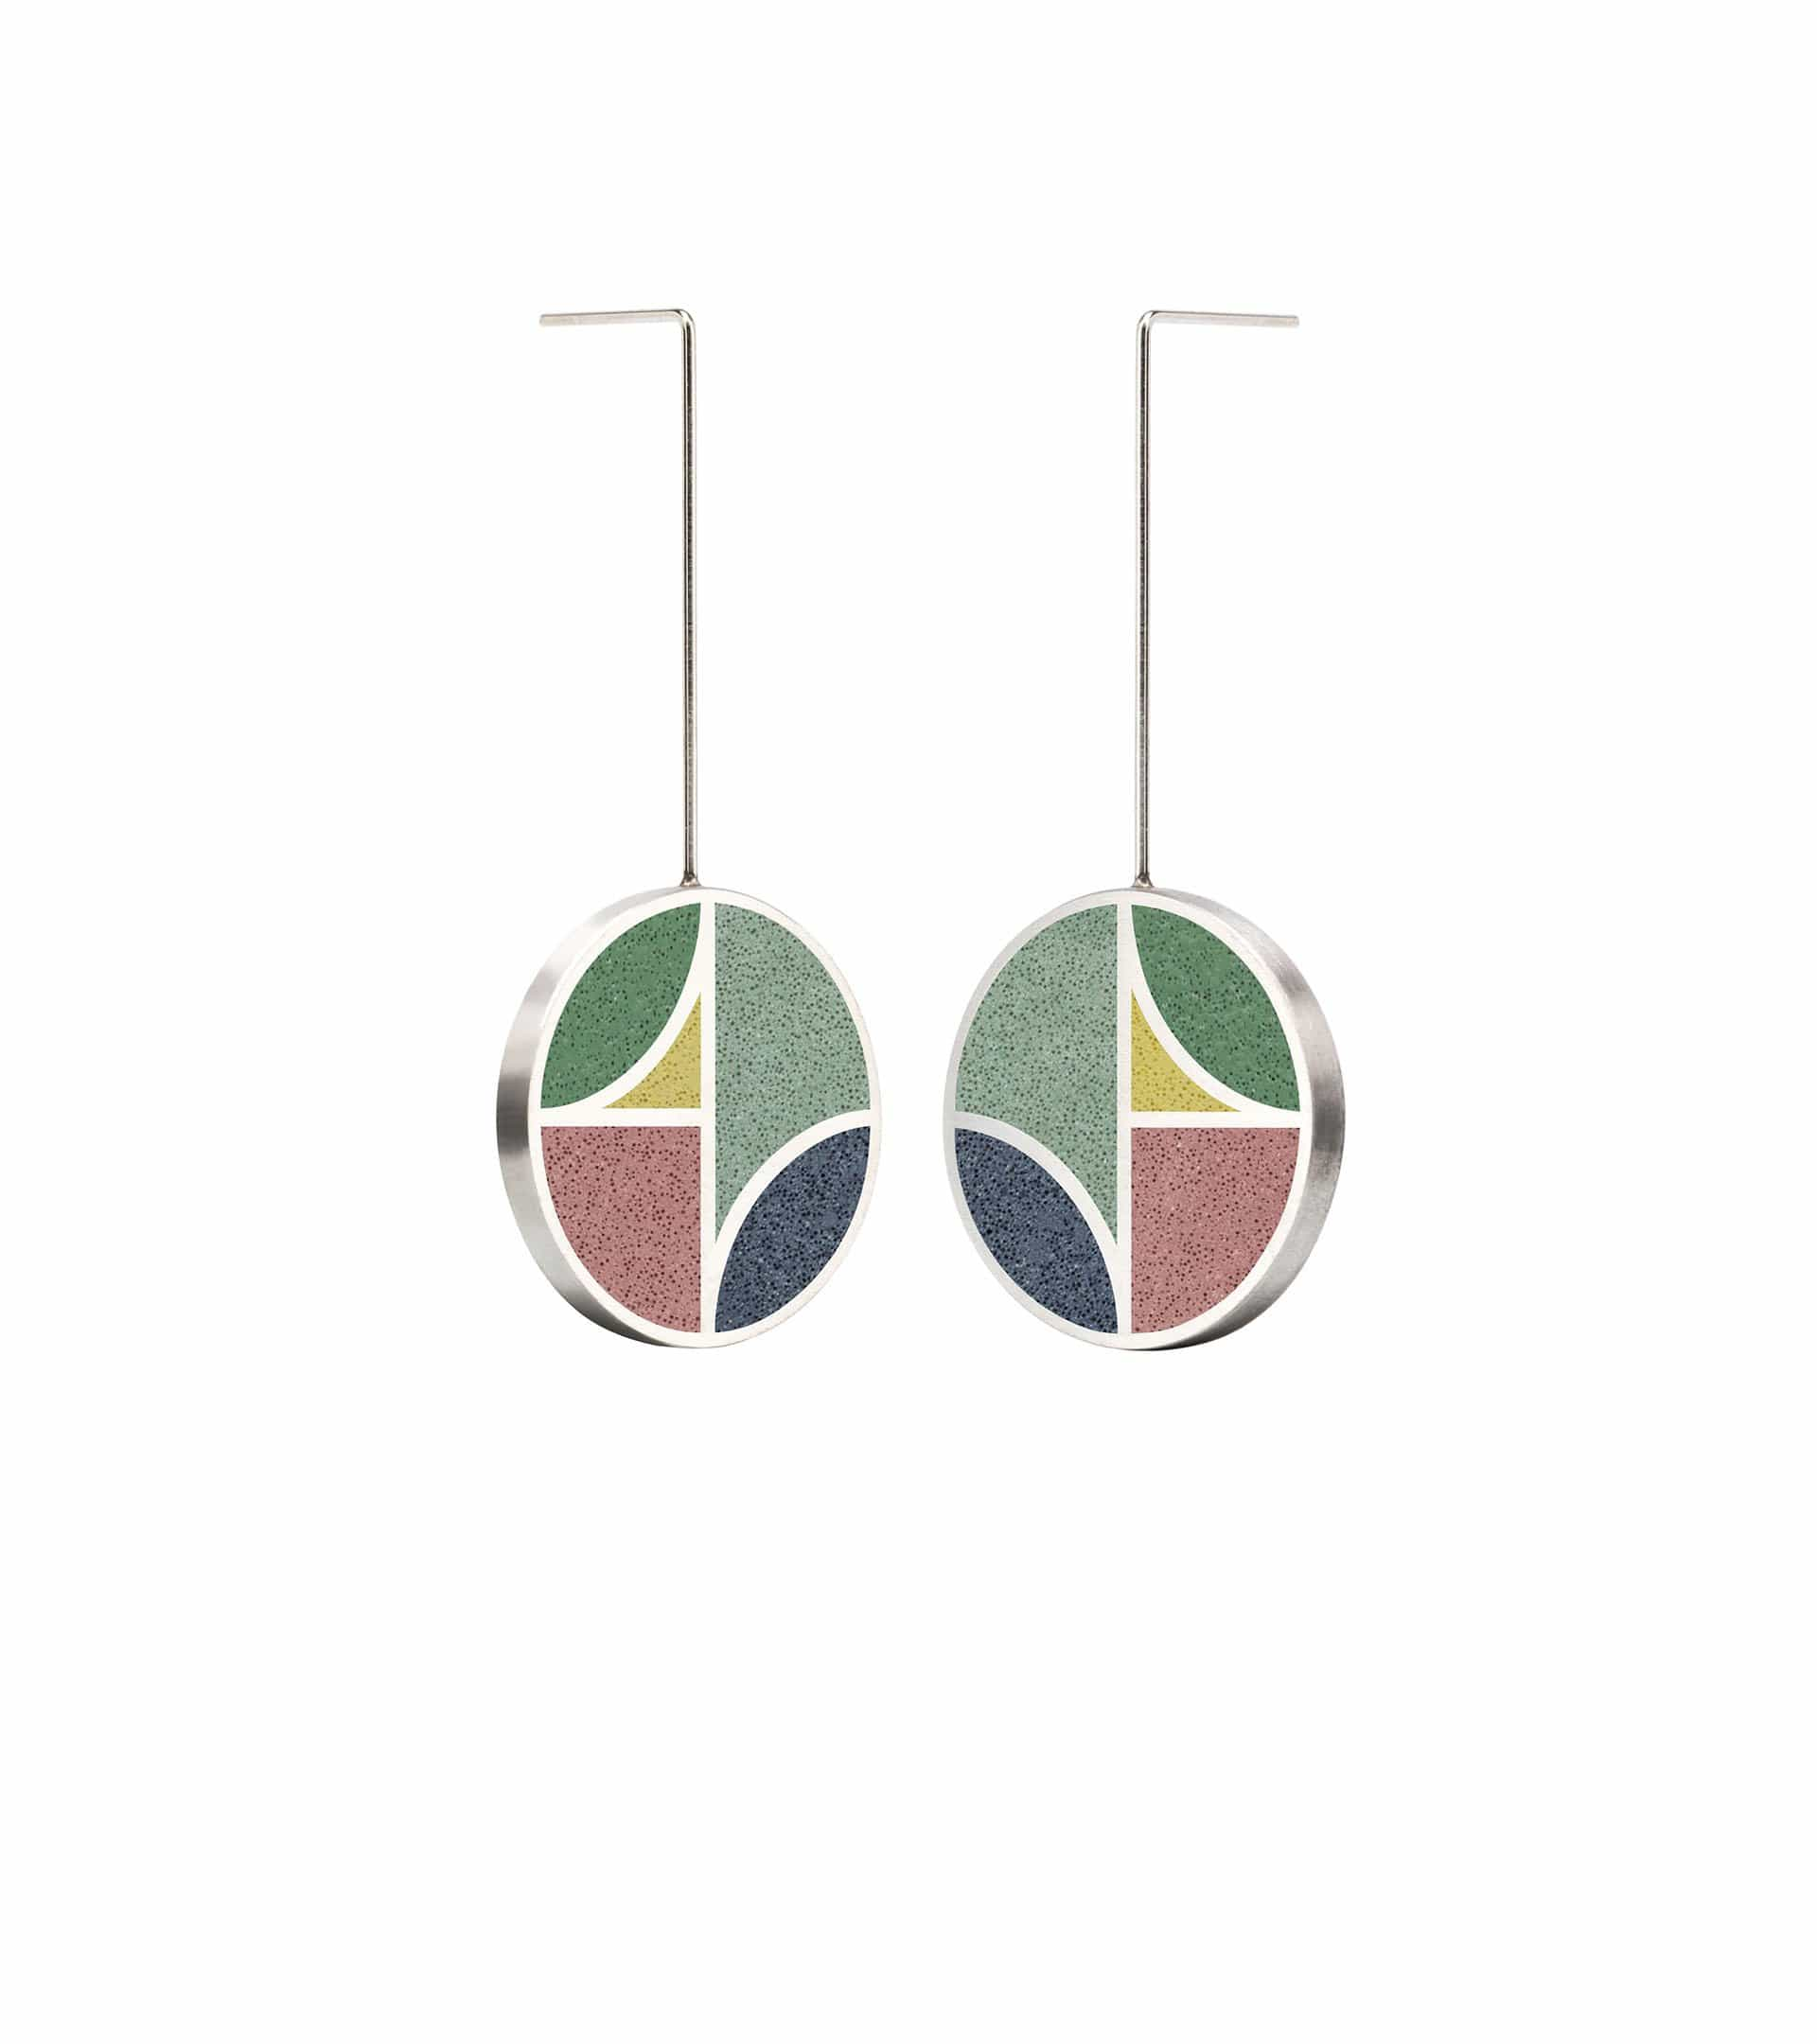 Konzuk Earrings Saguaro - Concrete Earring Drops 2